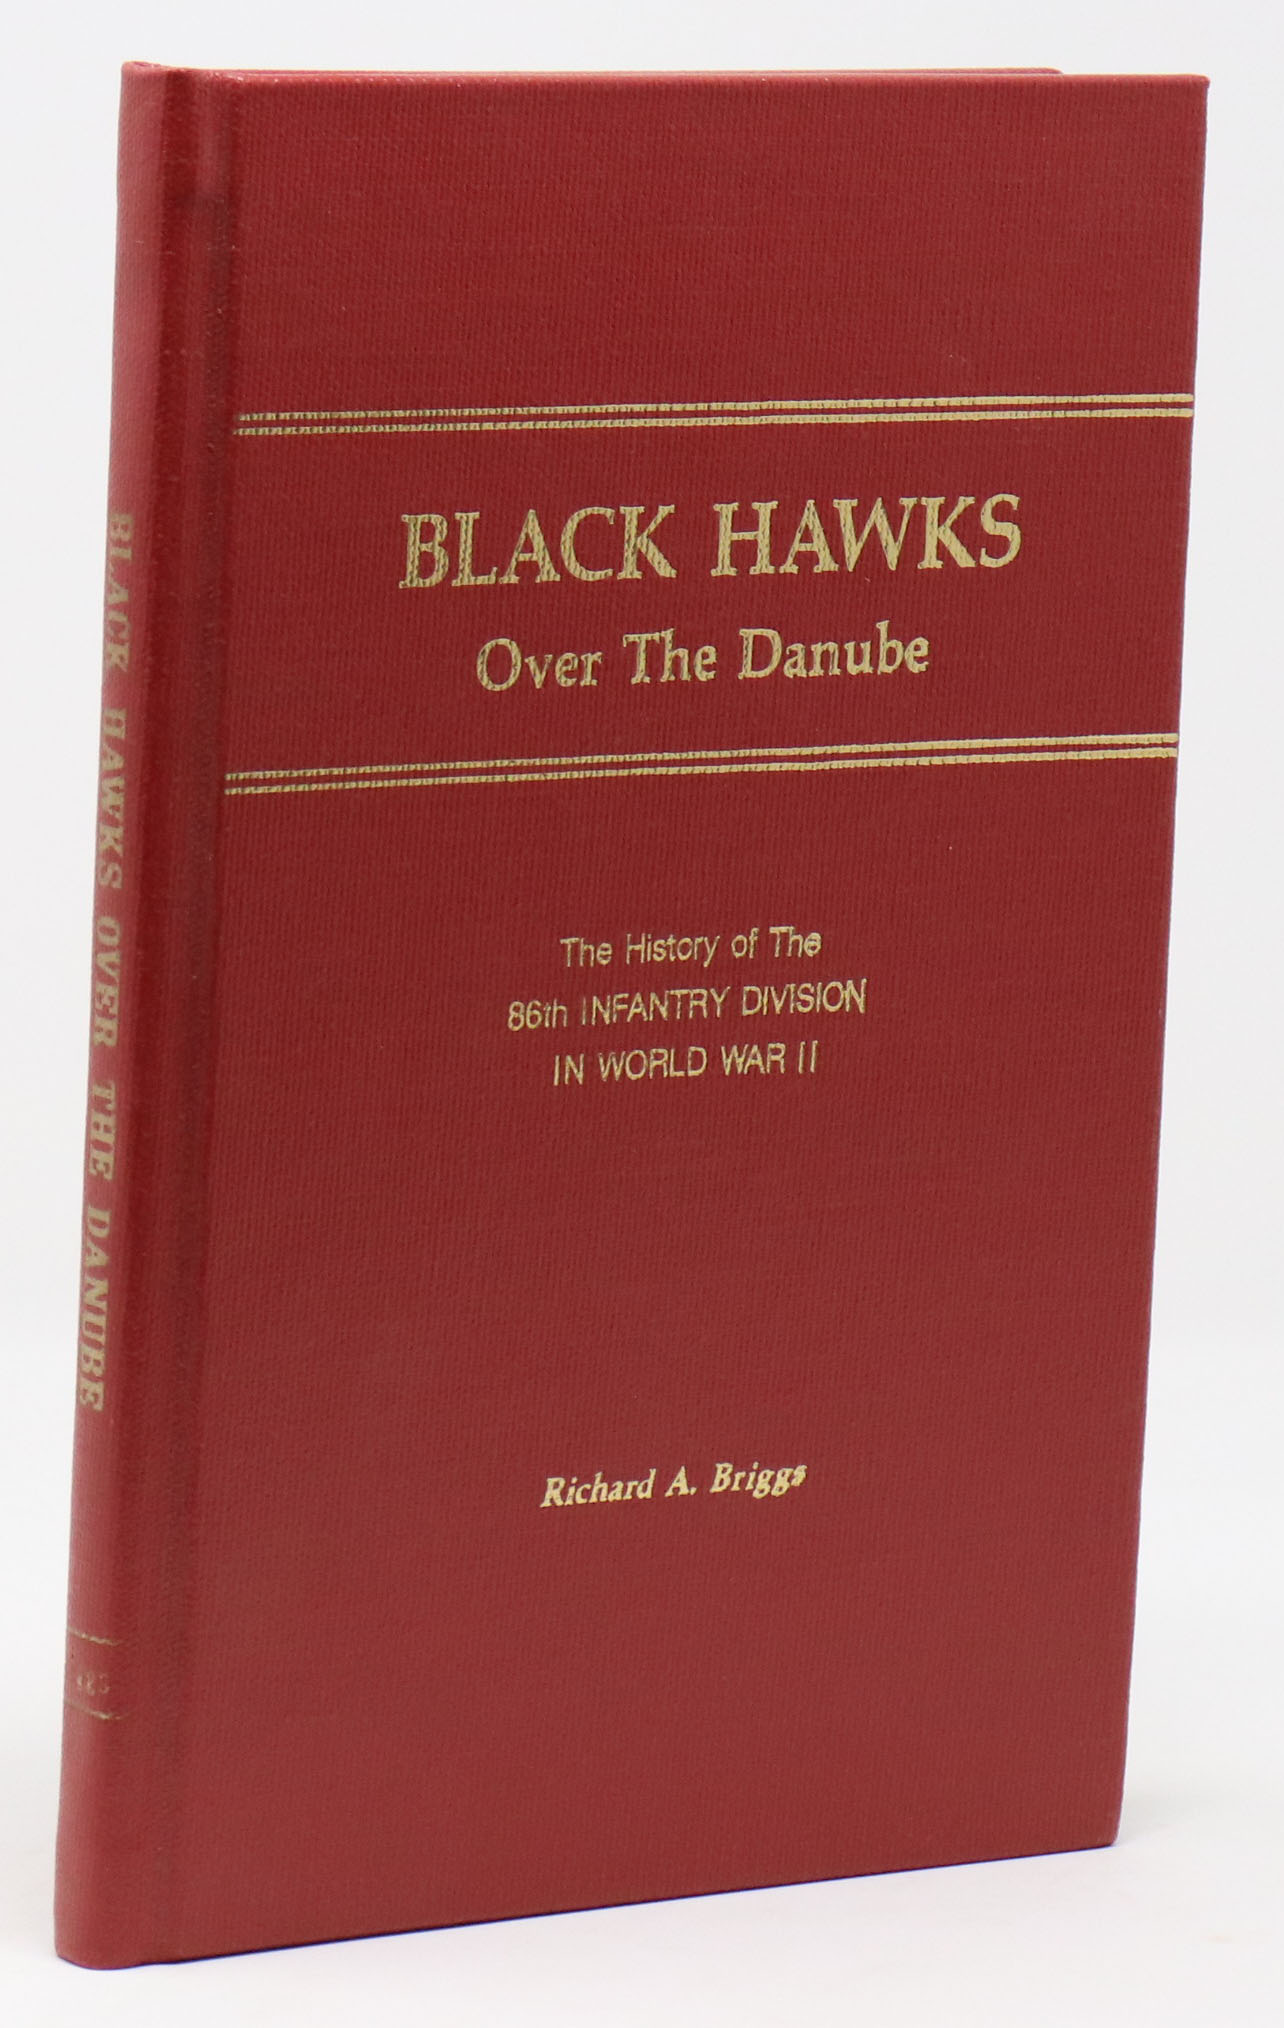 Image for Black Hawks over the Danube The History of the 86th Infantry Division in World War II